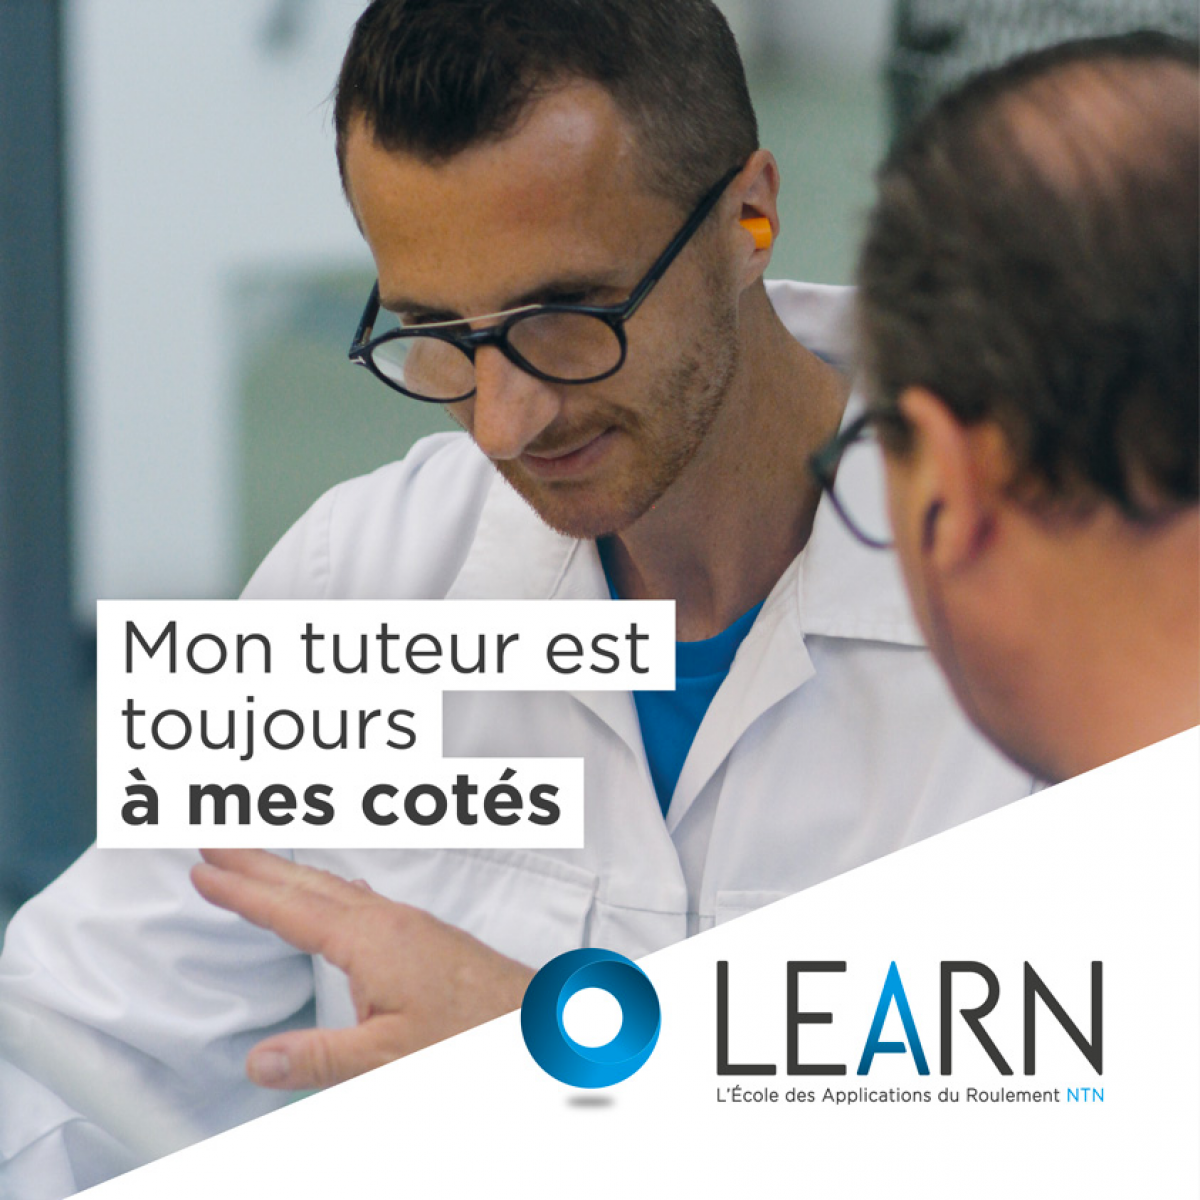 LEARN, prochaine session de formation en mars 2020